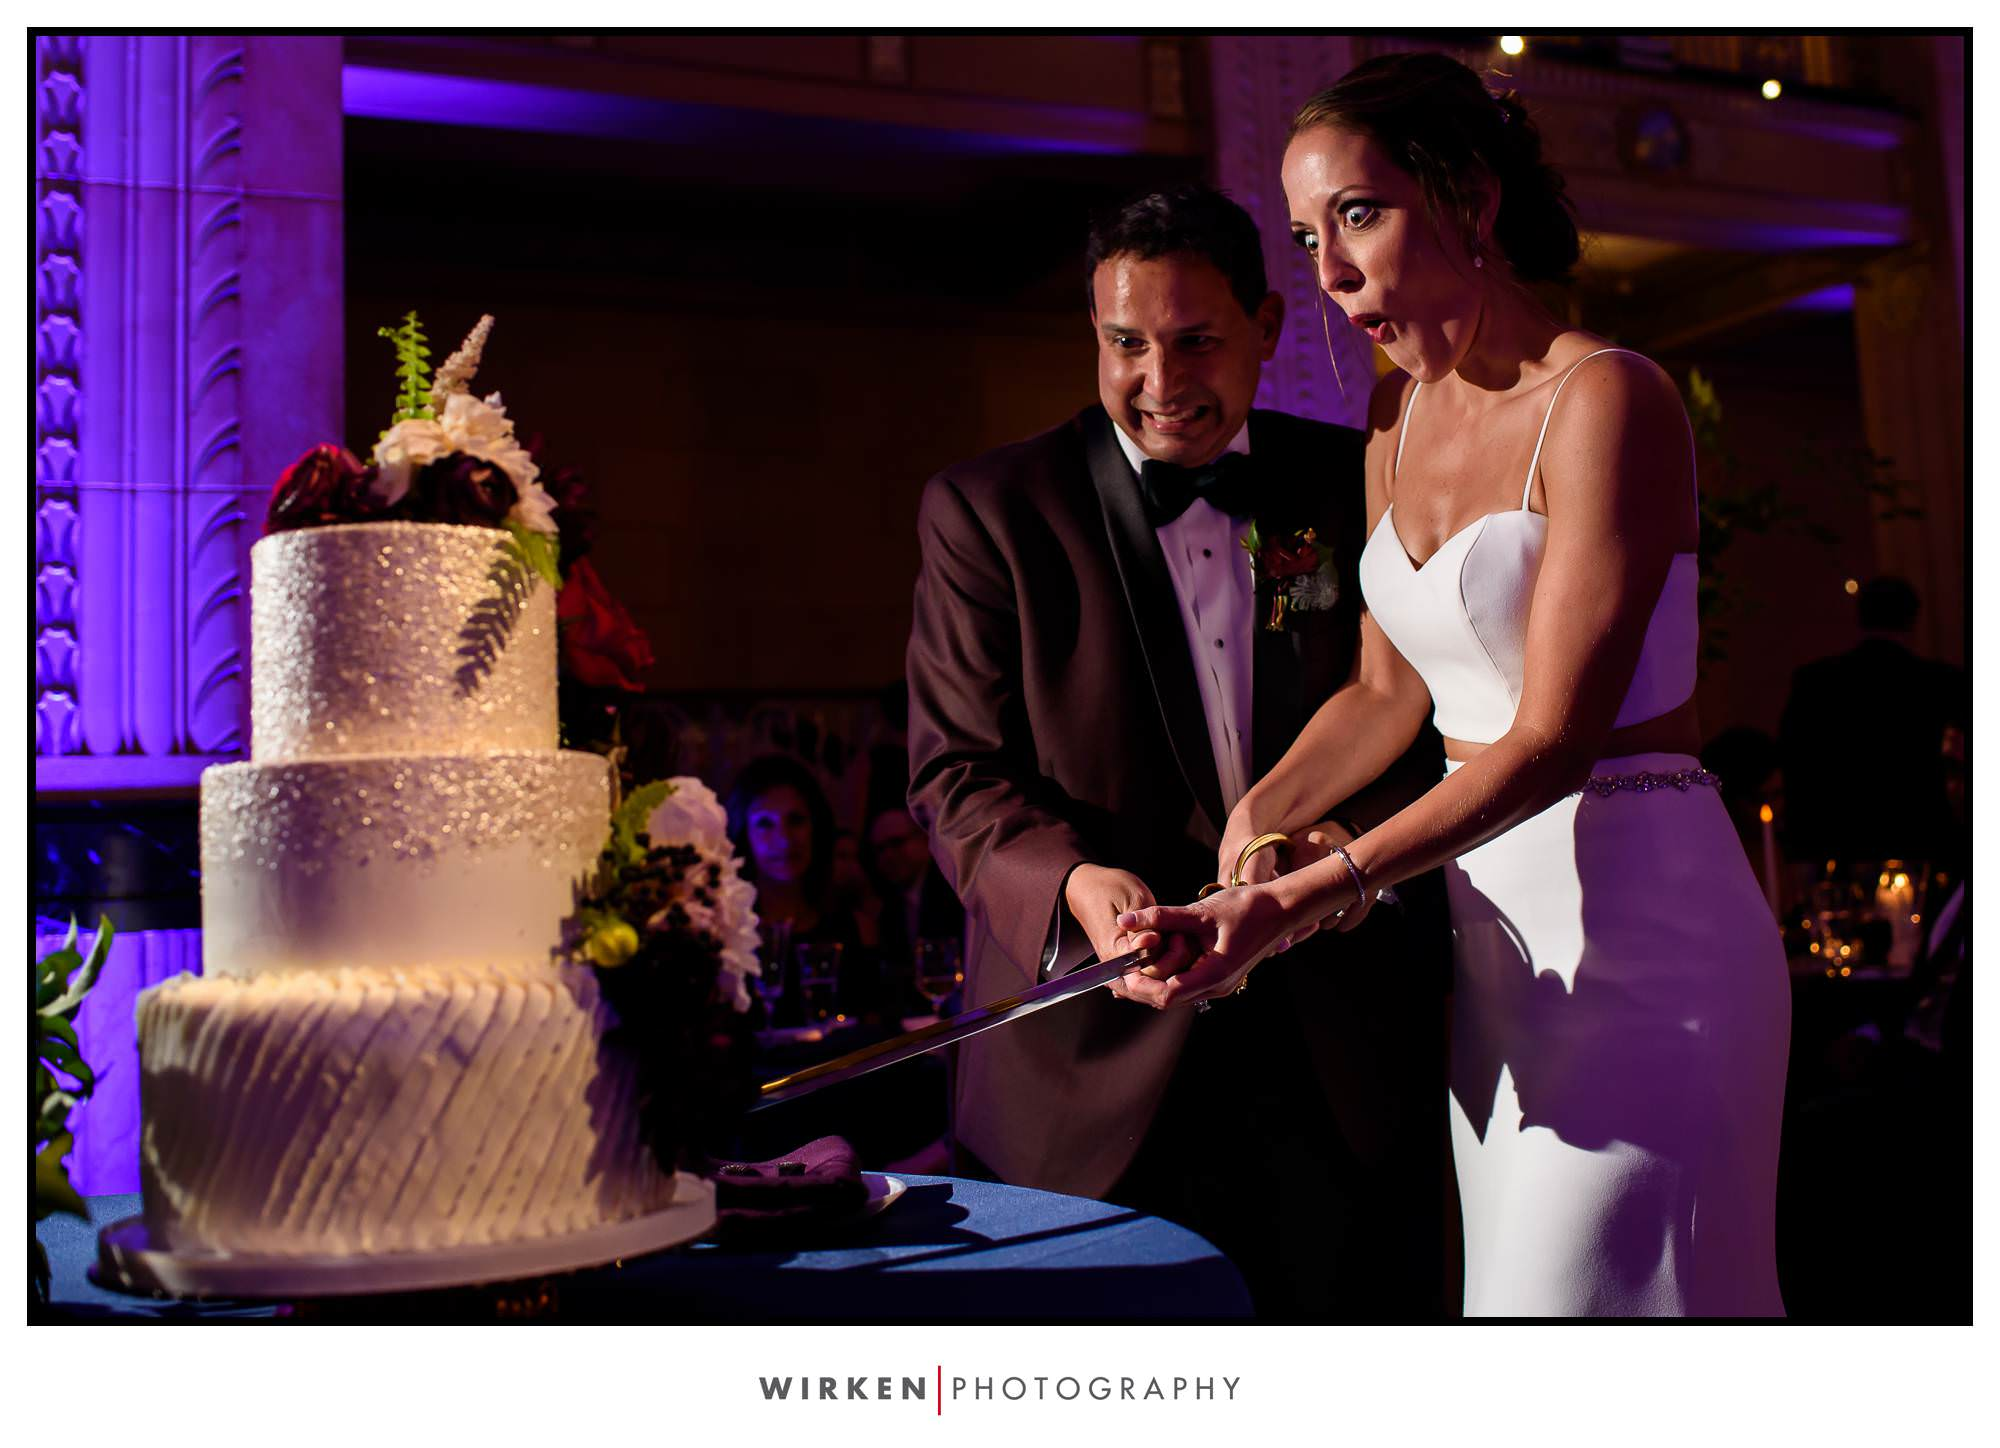 Bride and groom cut their wedding cake with a sword at the Grand Hall wedding reception in Kansas City.